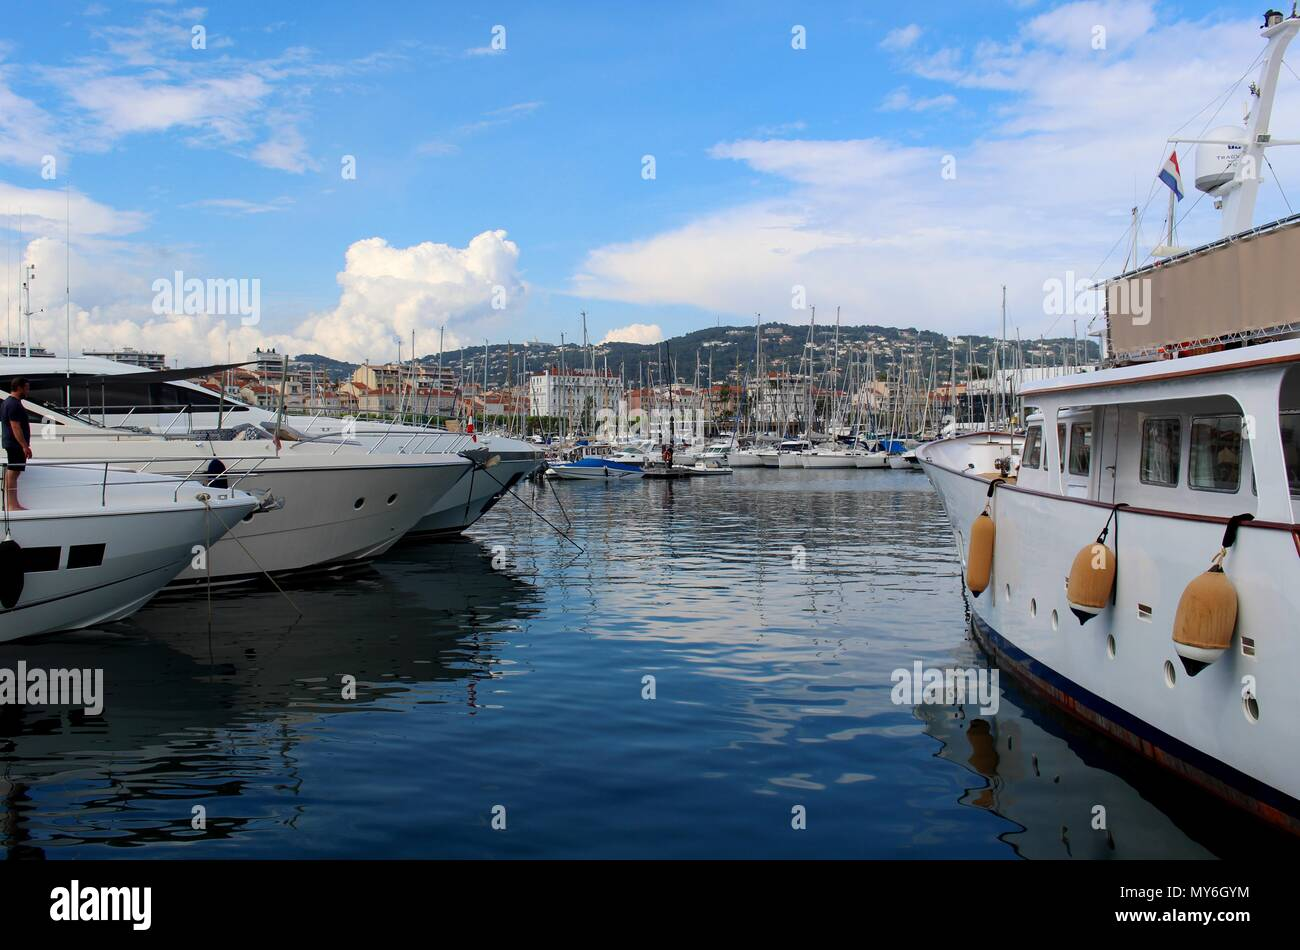 Cannes' Port represents the oldest part of the city. Stock Photo